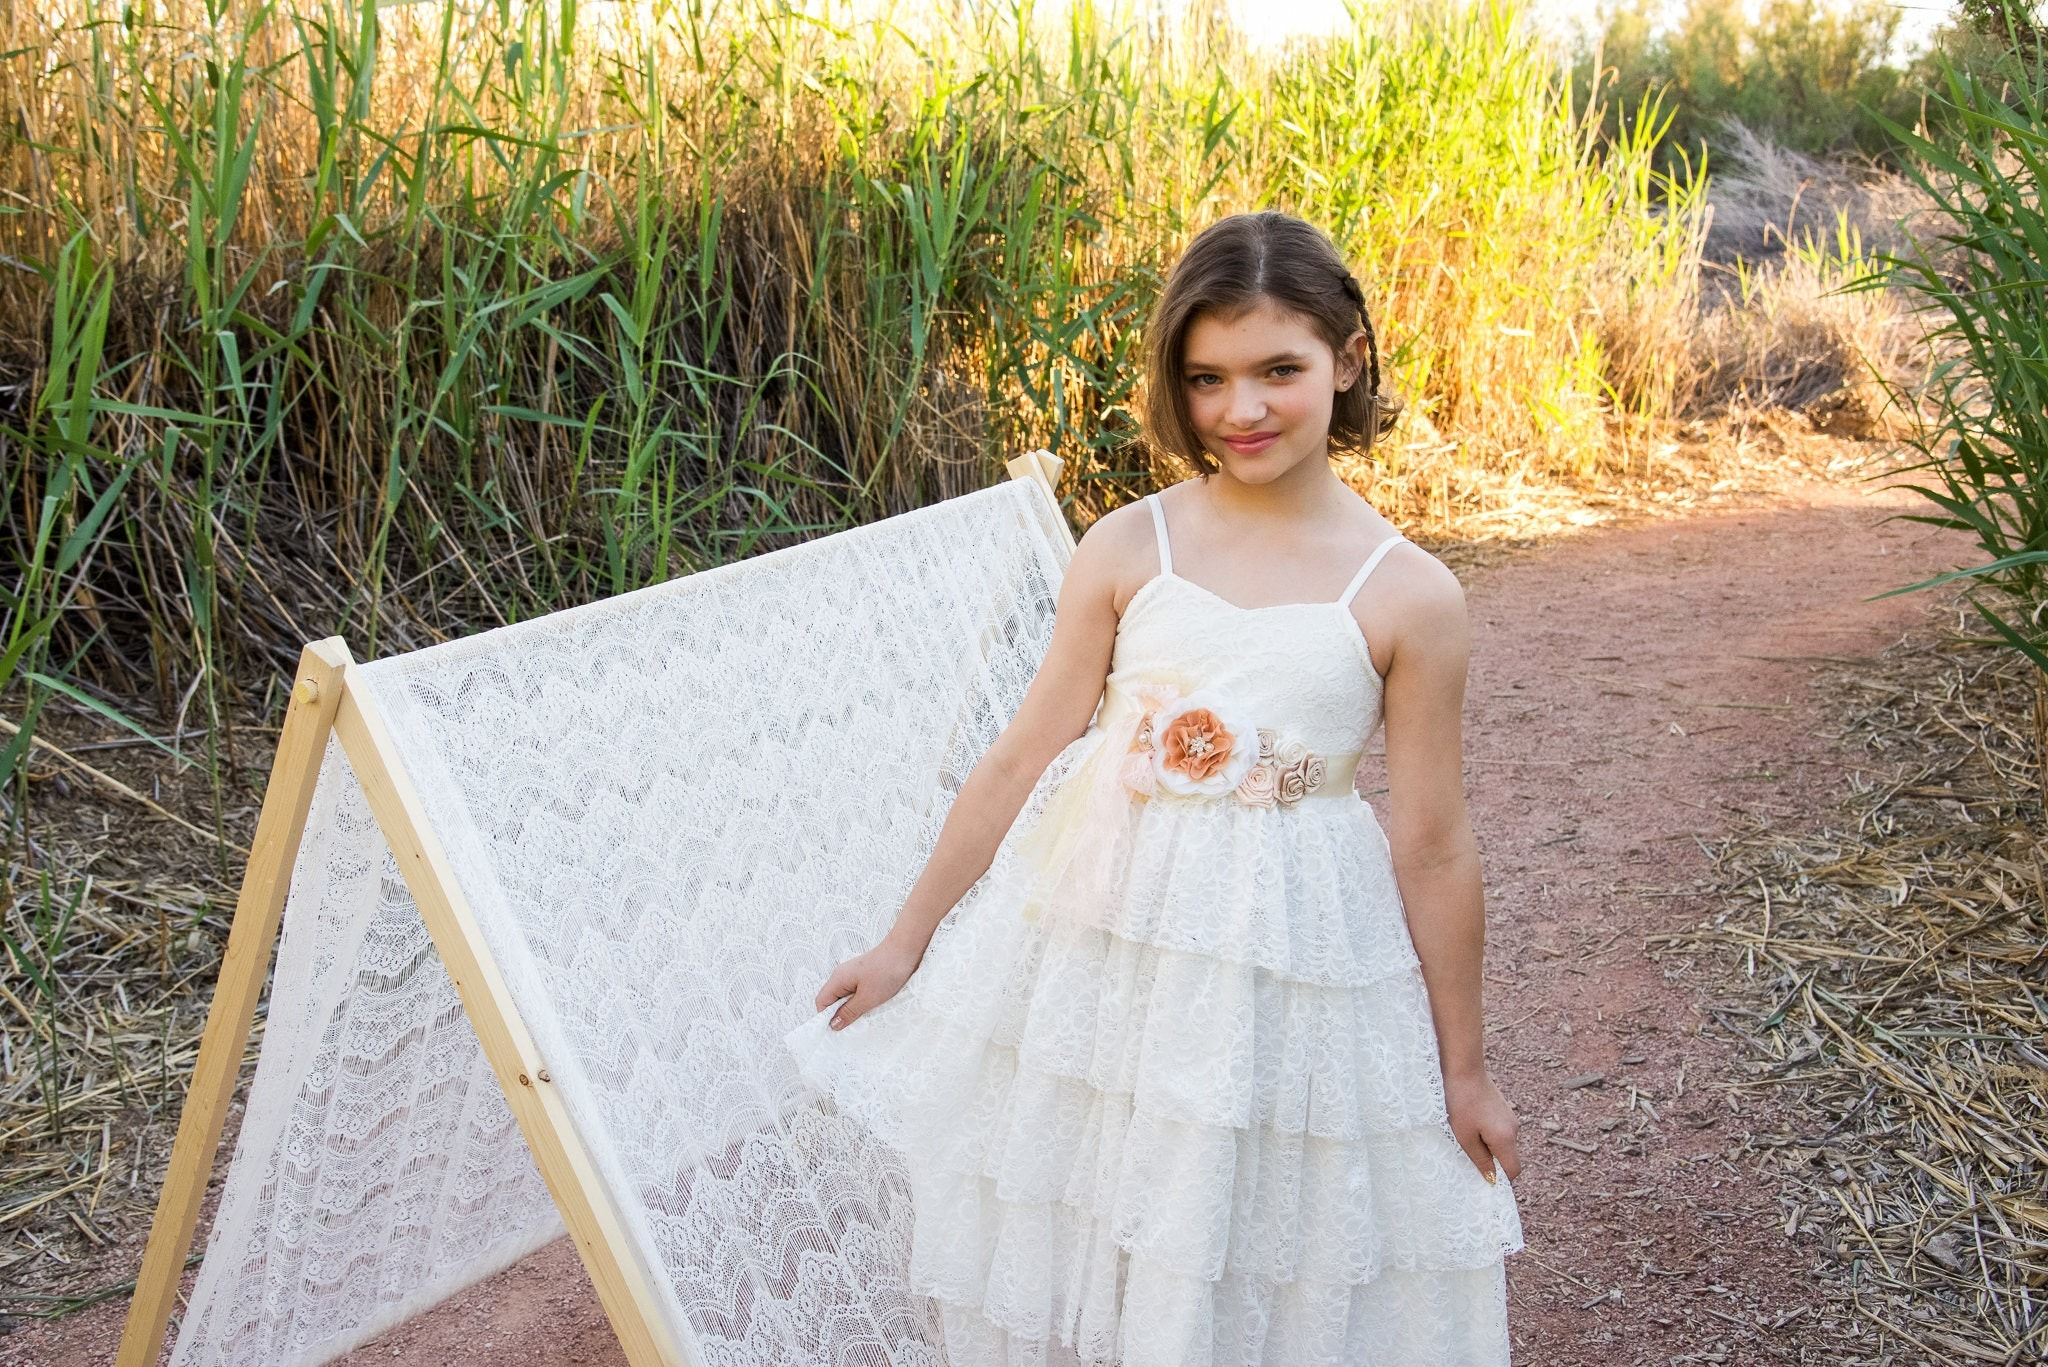 Junior bridesmaid dress flower girl lace dress girls boho dress junior bridesmaid dress flower girl lace dress girls boho dress white lace dress ombrellifo Image collections